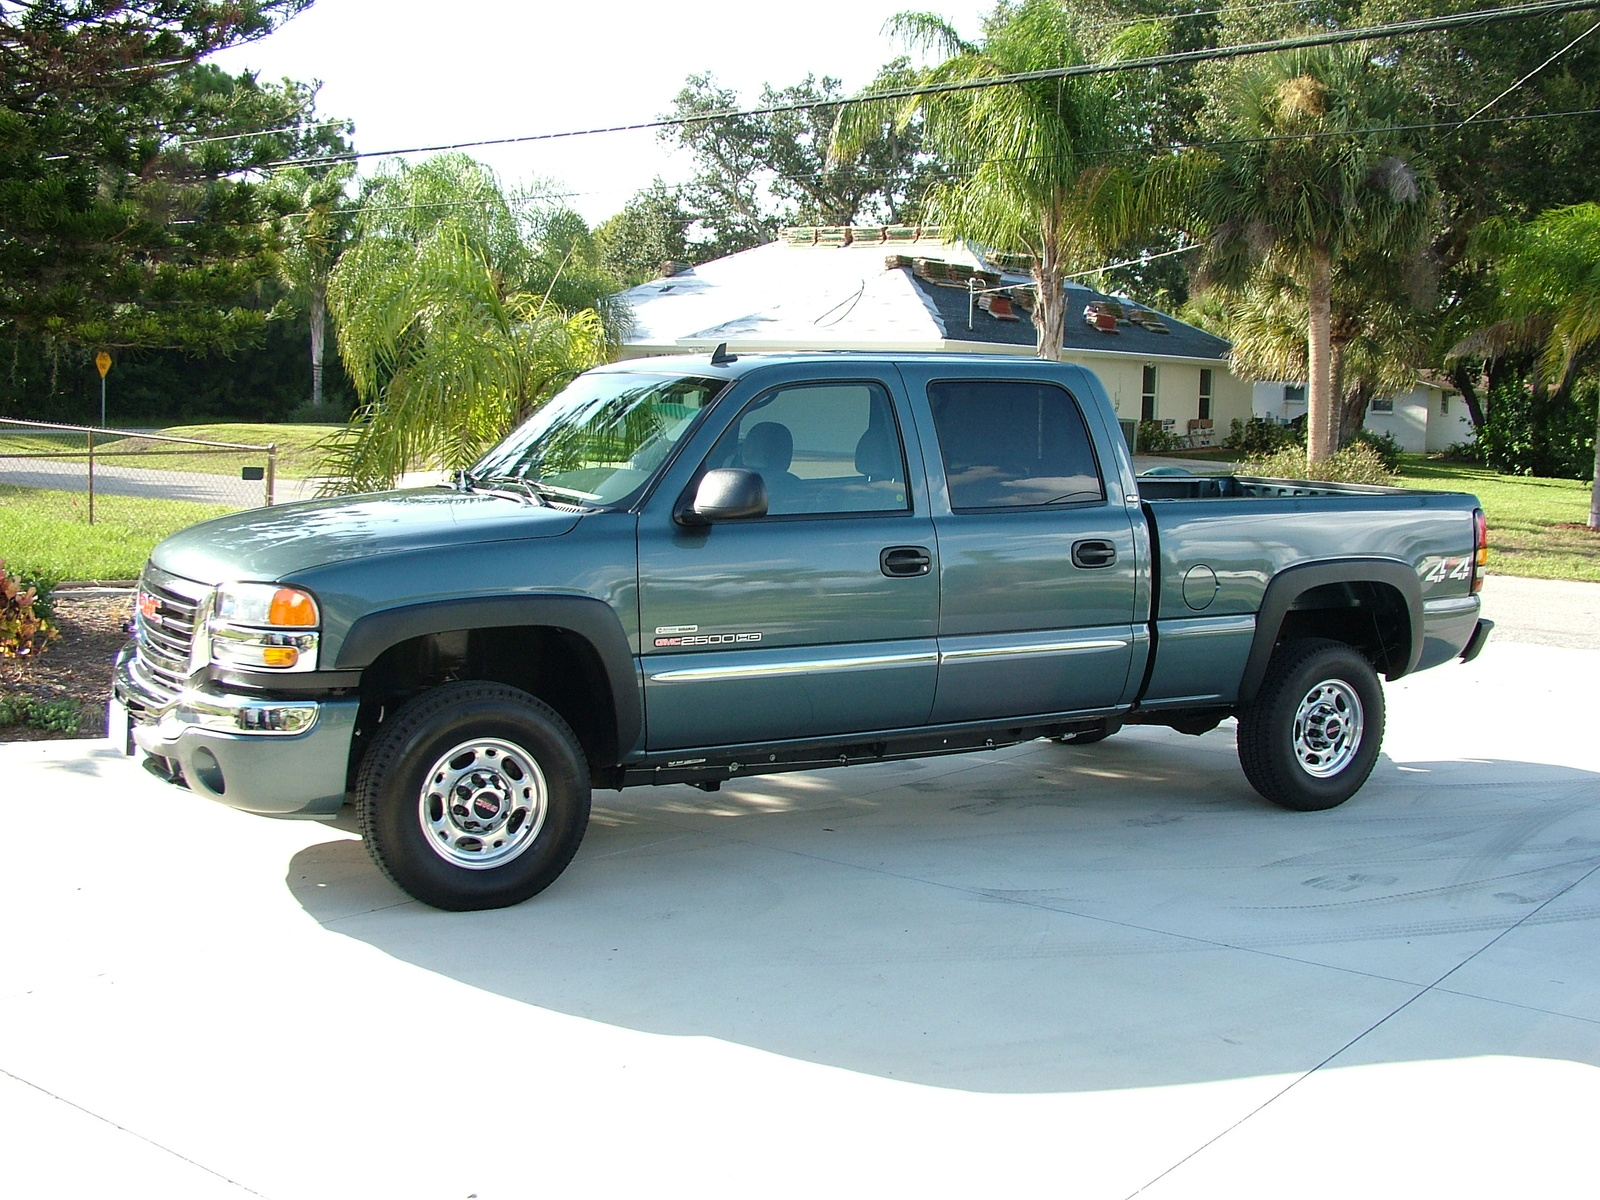 Picture of 2007 GMC Sierra 2500HD Classic 4 Dr SLT Crew Cab 4WD